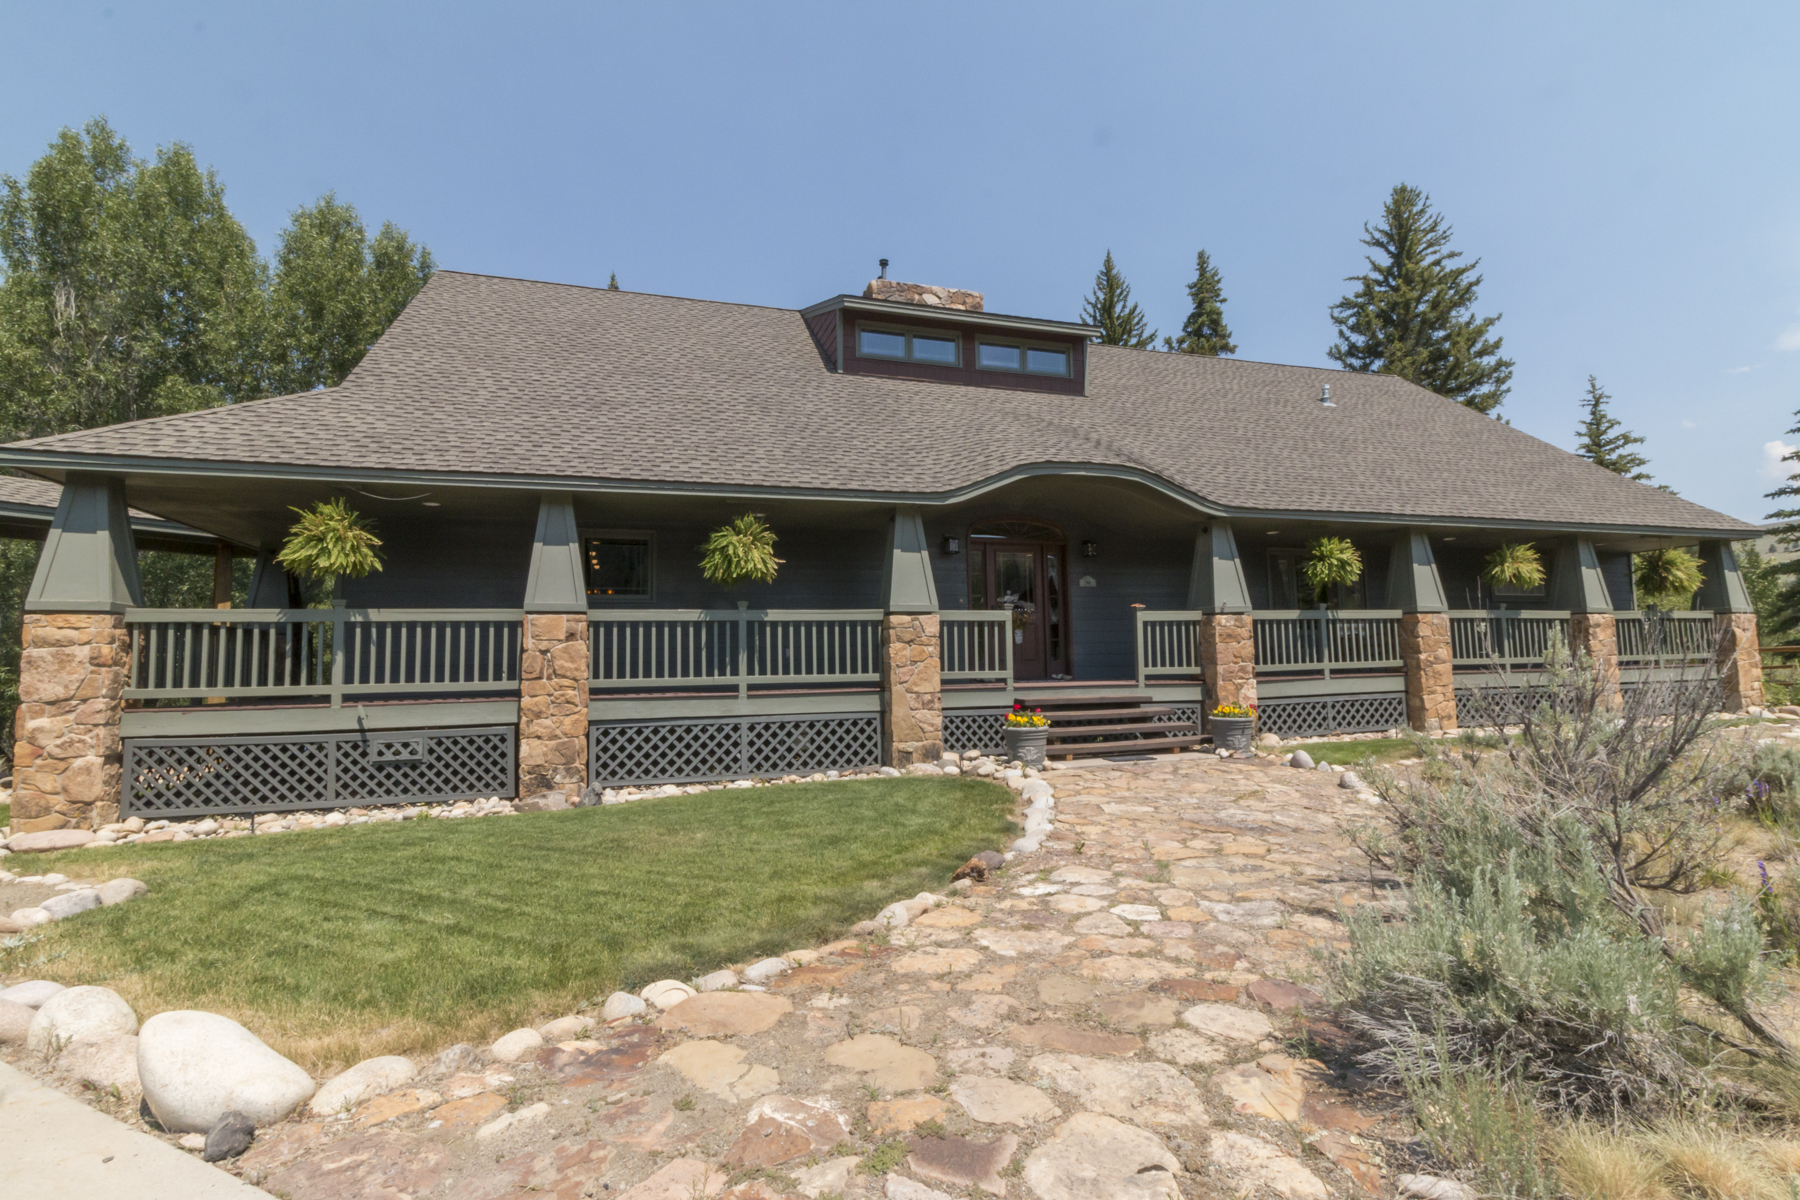 Single Family Home for Active at Outstanding Confluence Home 133 Rainbow Drive Almont, Colorado 81210 United States